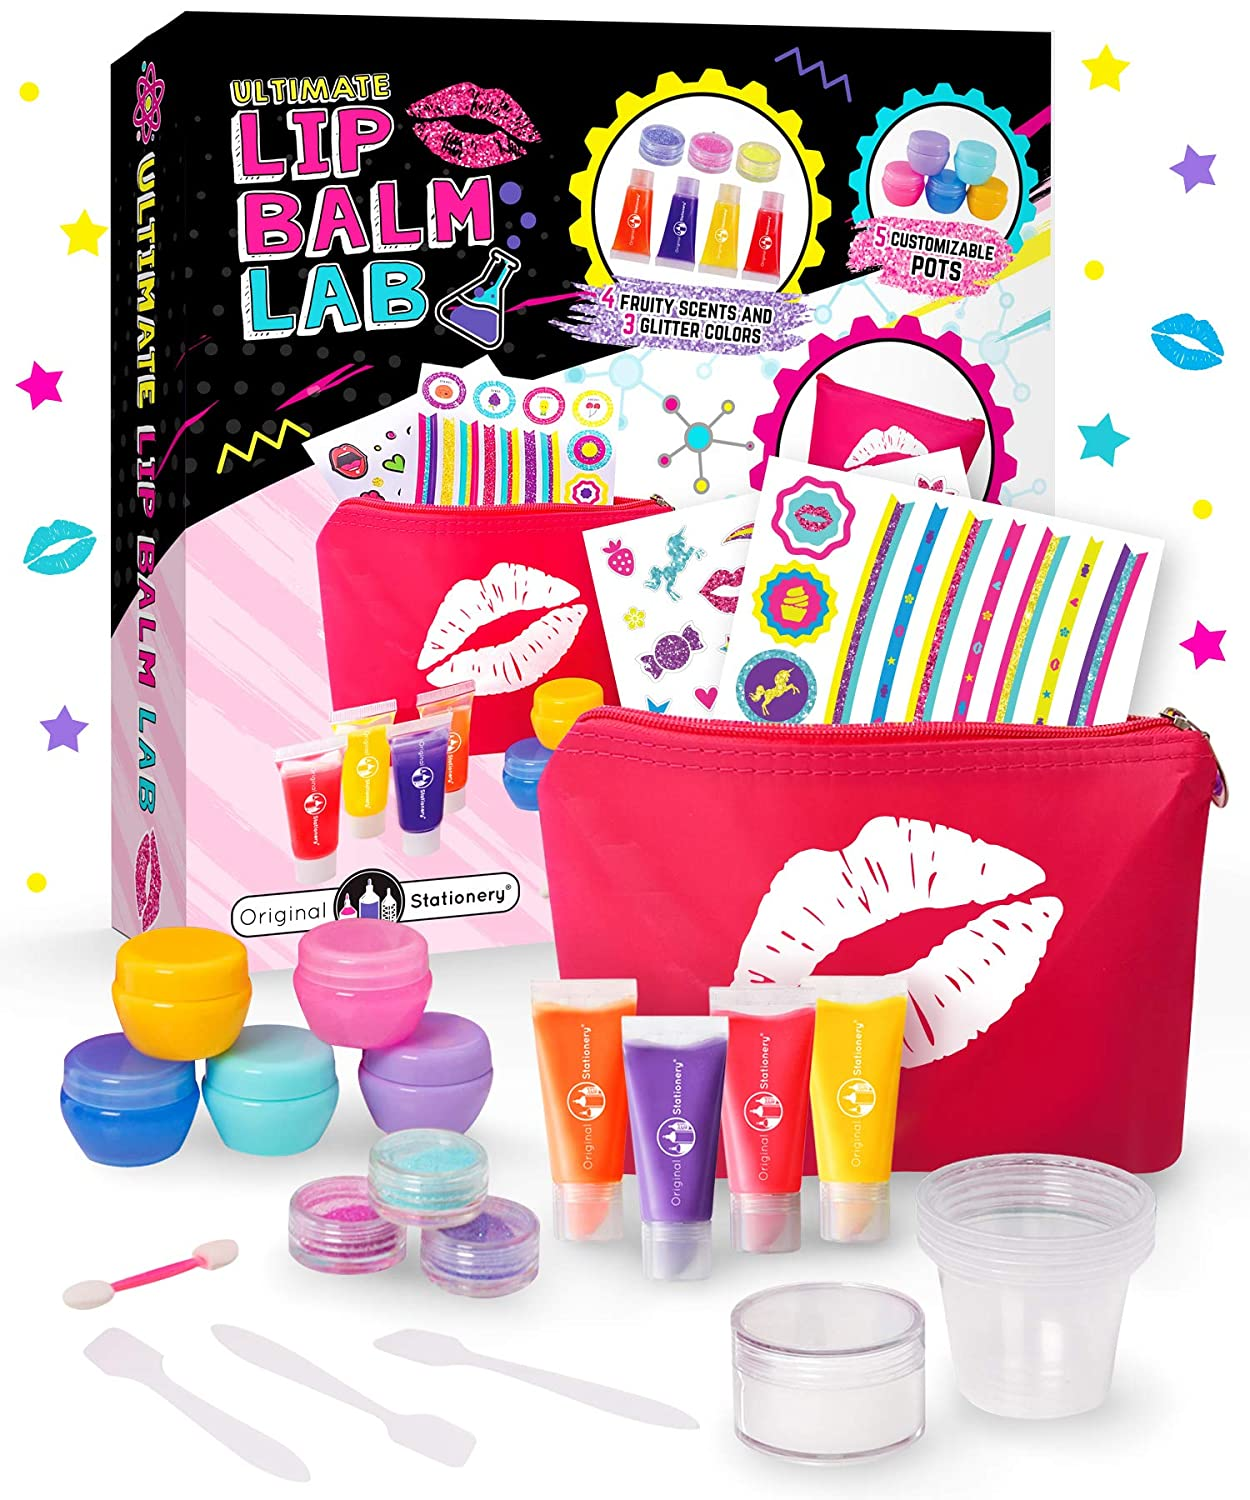 gifts-for-14-year-old-girl-lip-balm